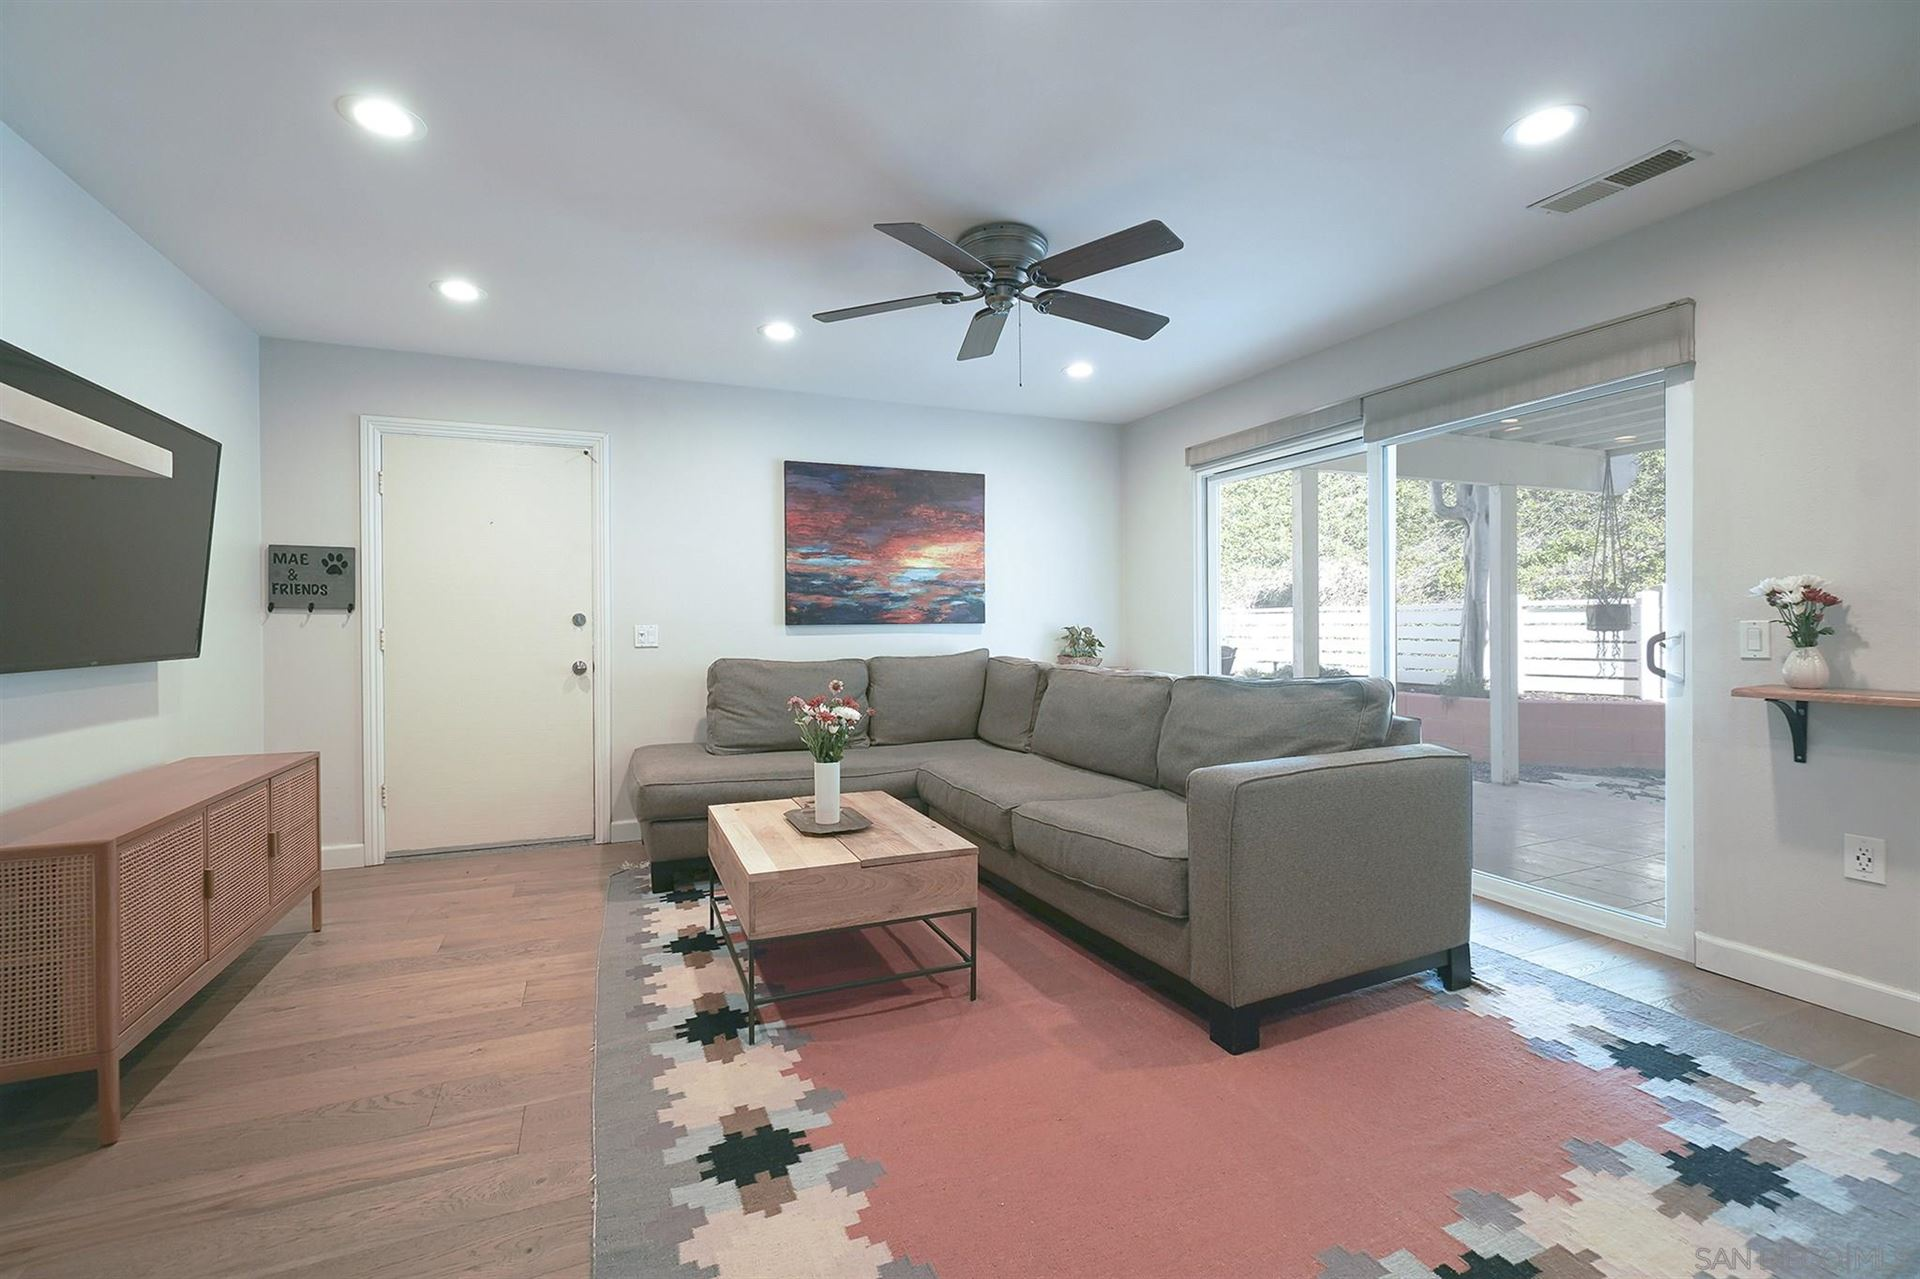 Photo of 1415 Caminito Septimo, Cardiff By The Sea, CA 92007 (MLS # 200053445)